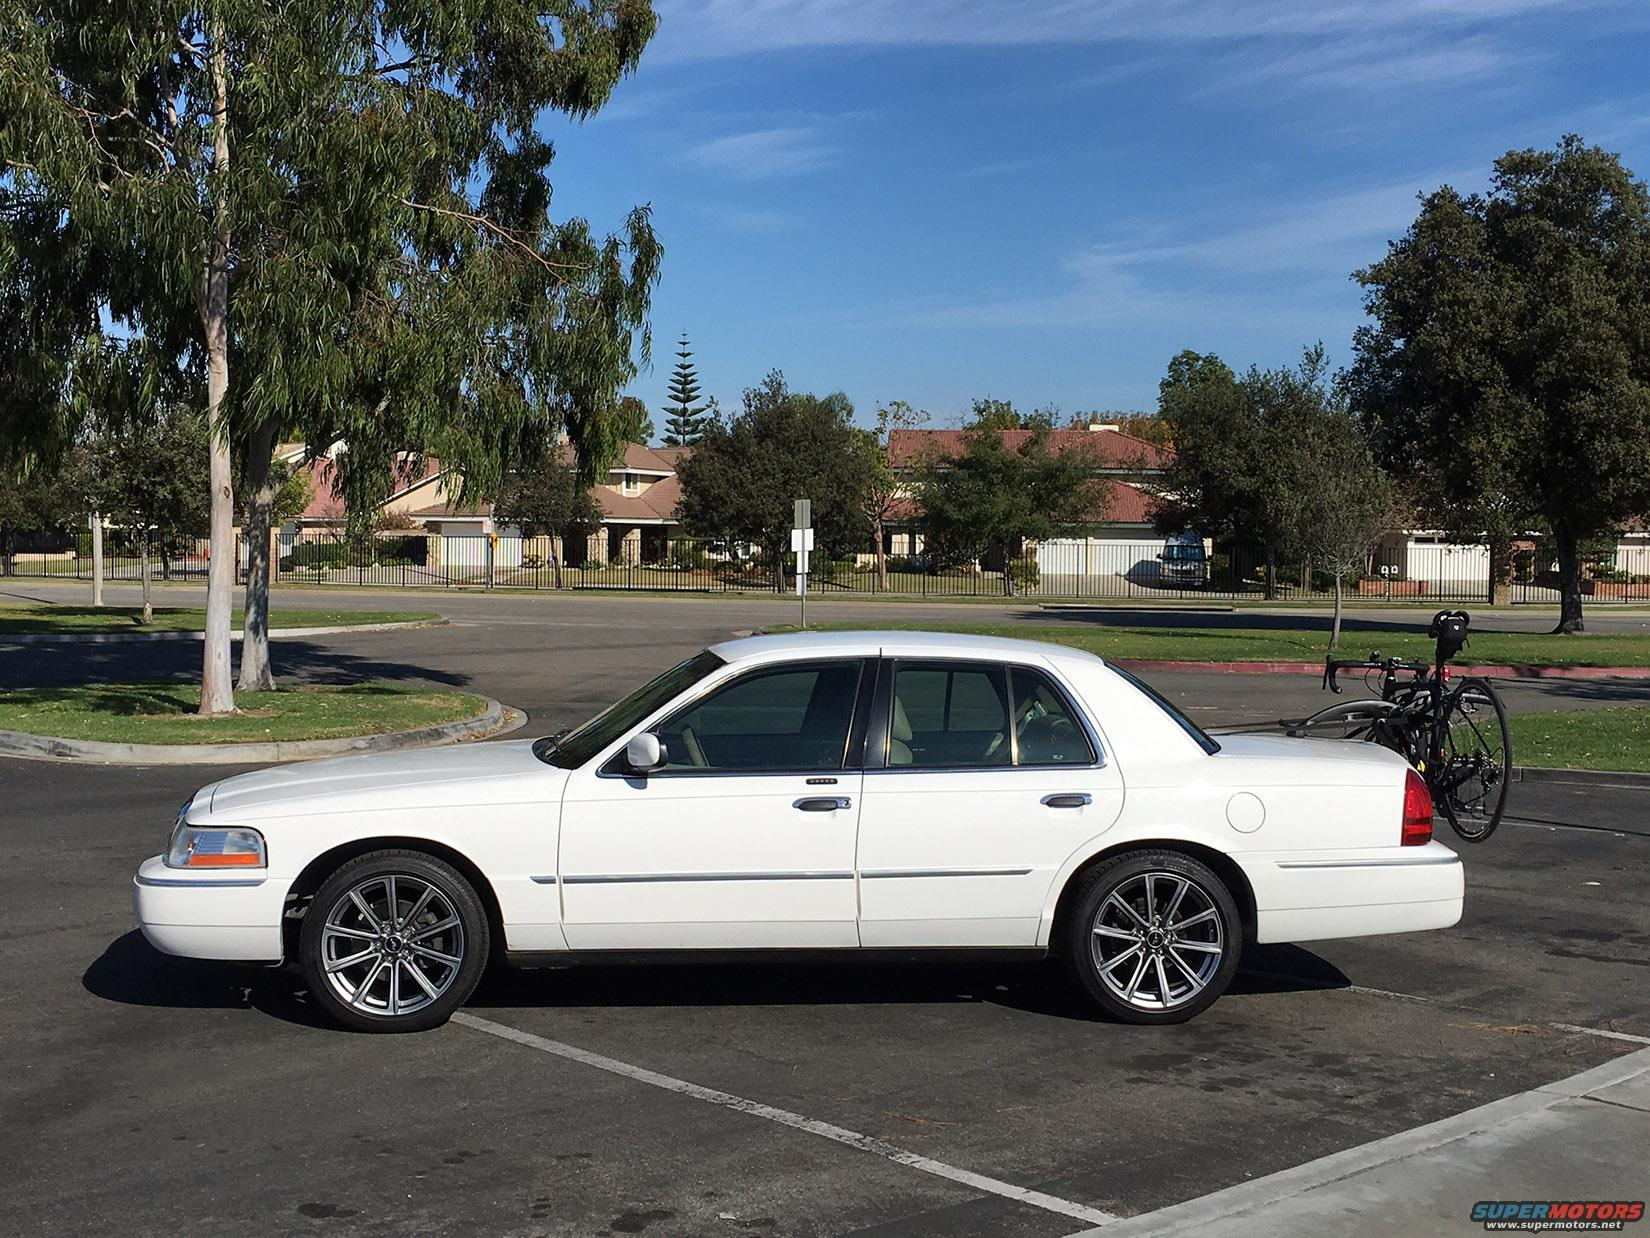 Show me your Mustang wheels on your crown vic!   Tires and Wheels